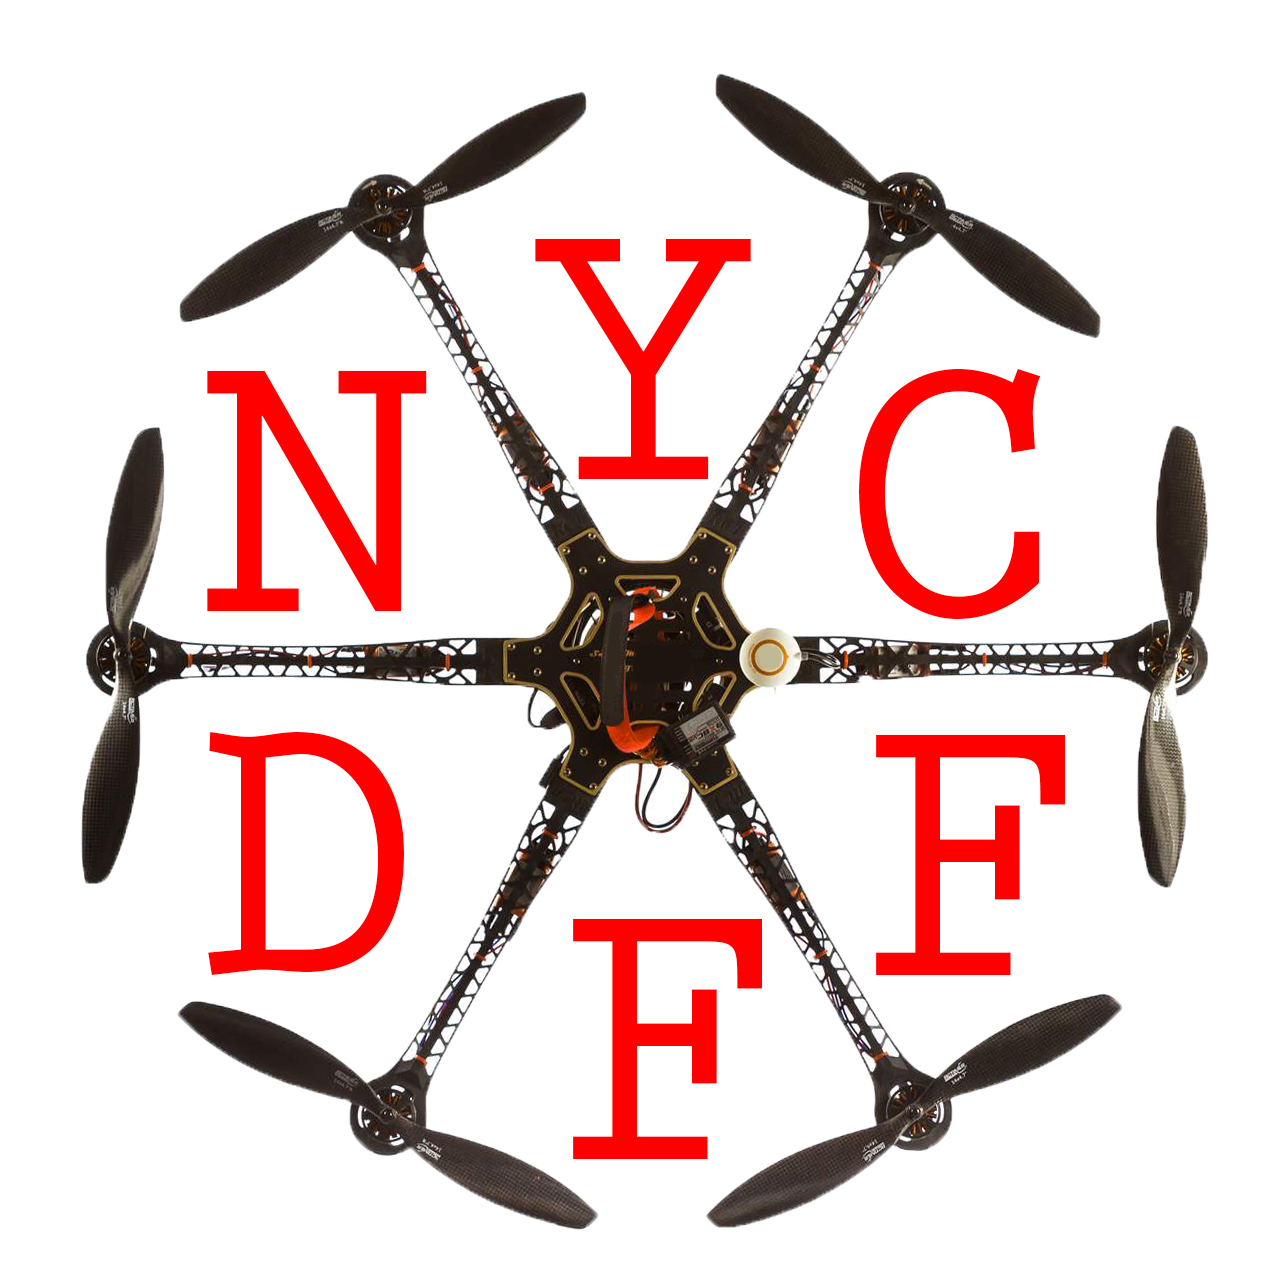 483_nycdff_logo Coming Up This Winter: First Annual NYC Drone Film Festival